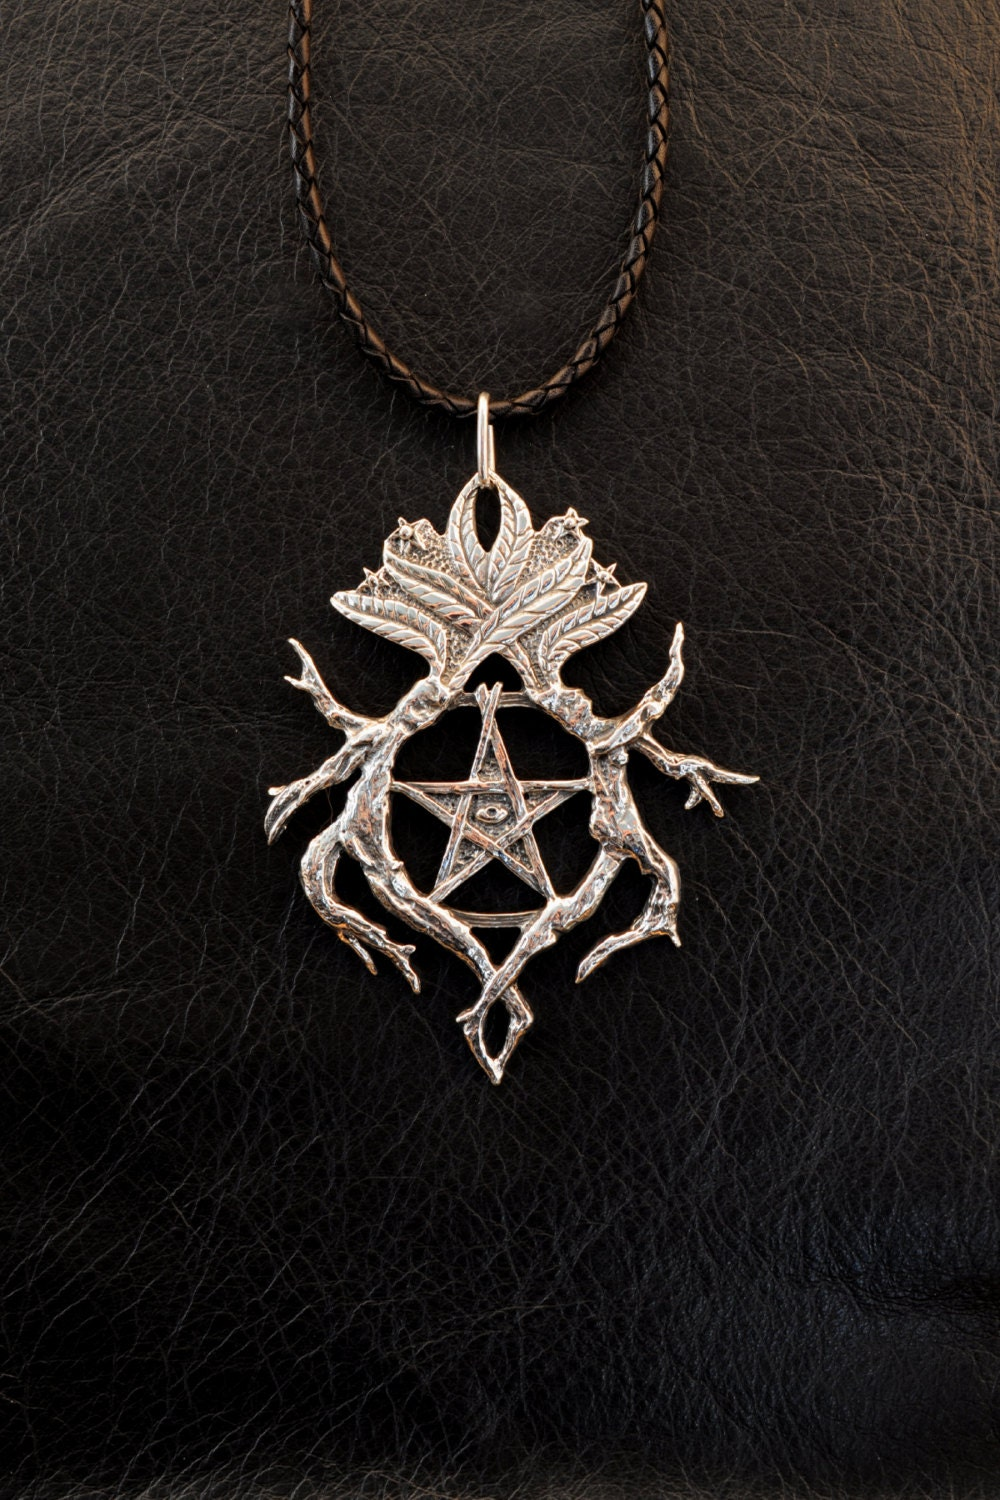 wiccan pendant metaphysical hecate pentacle necklace of jewelry witchcraft pagan hematite pin